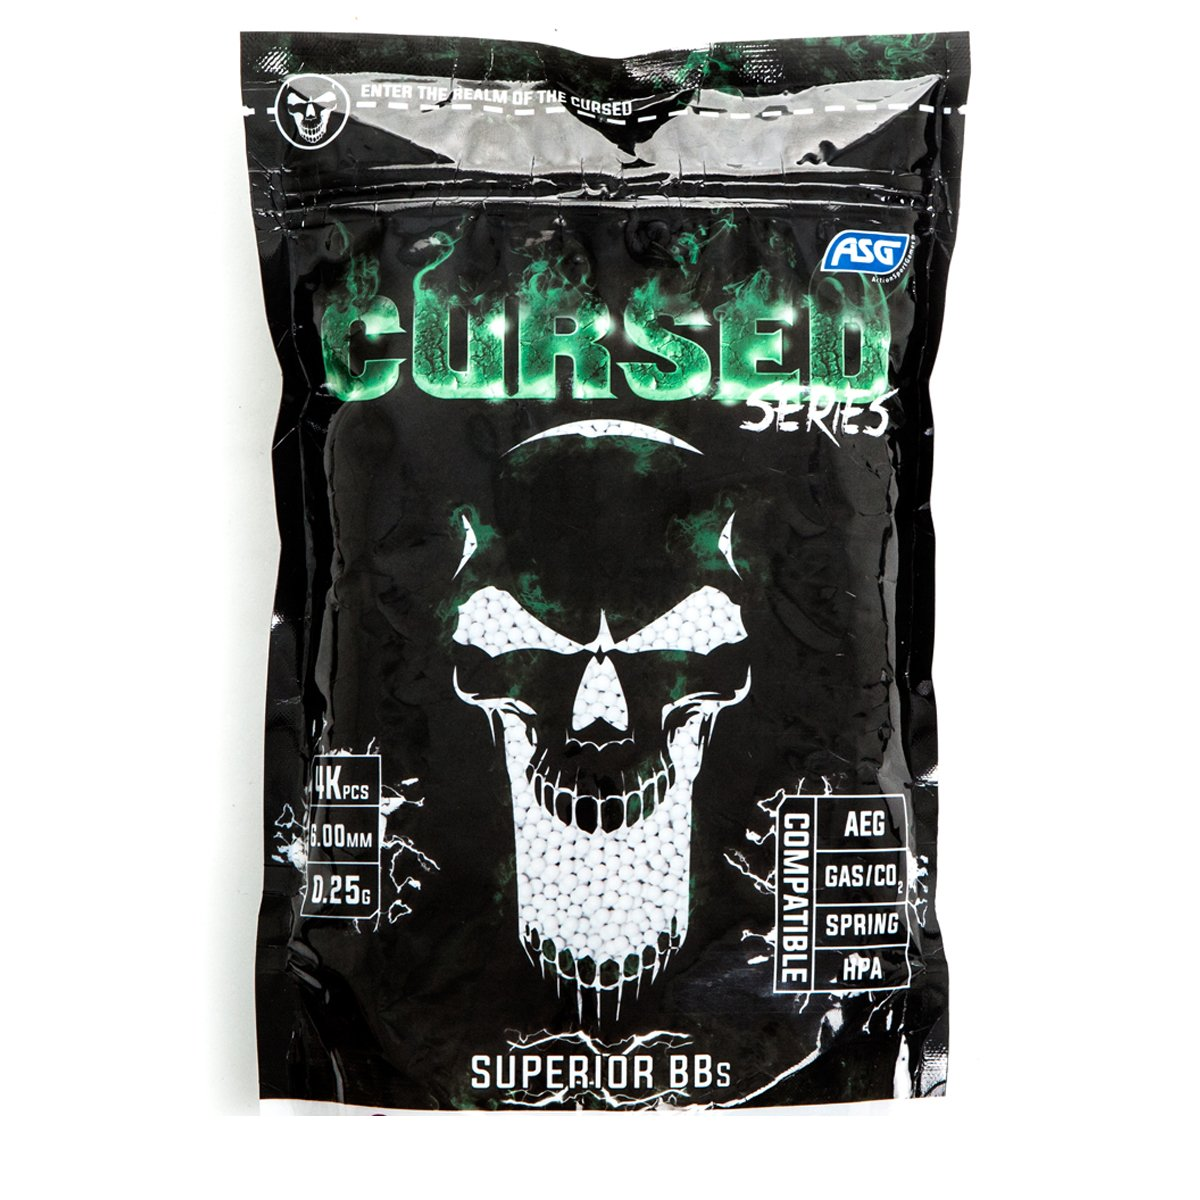 SACHET DE 4000 BILLES CURSED SERIES ASG DE 0.25 G 6 MM BLANCHES 18232 AIRSOFT